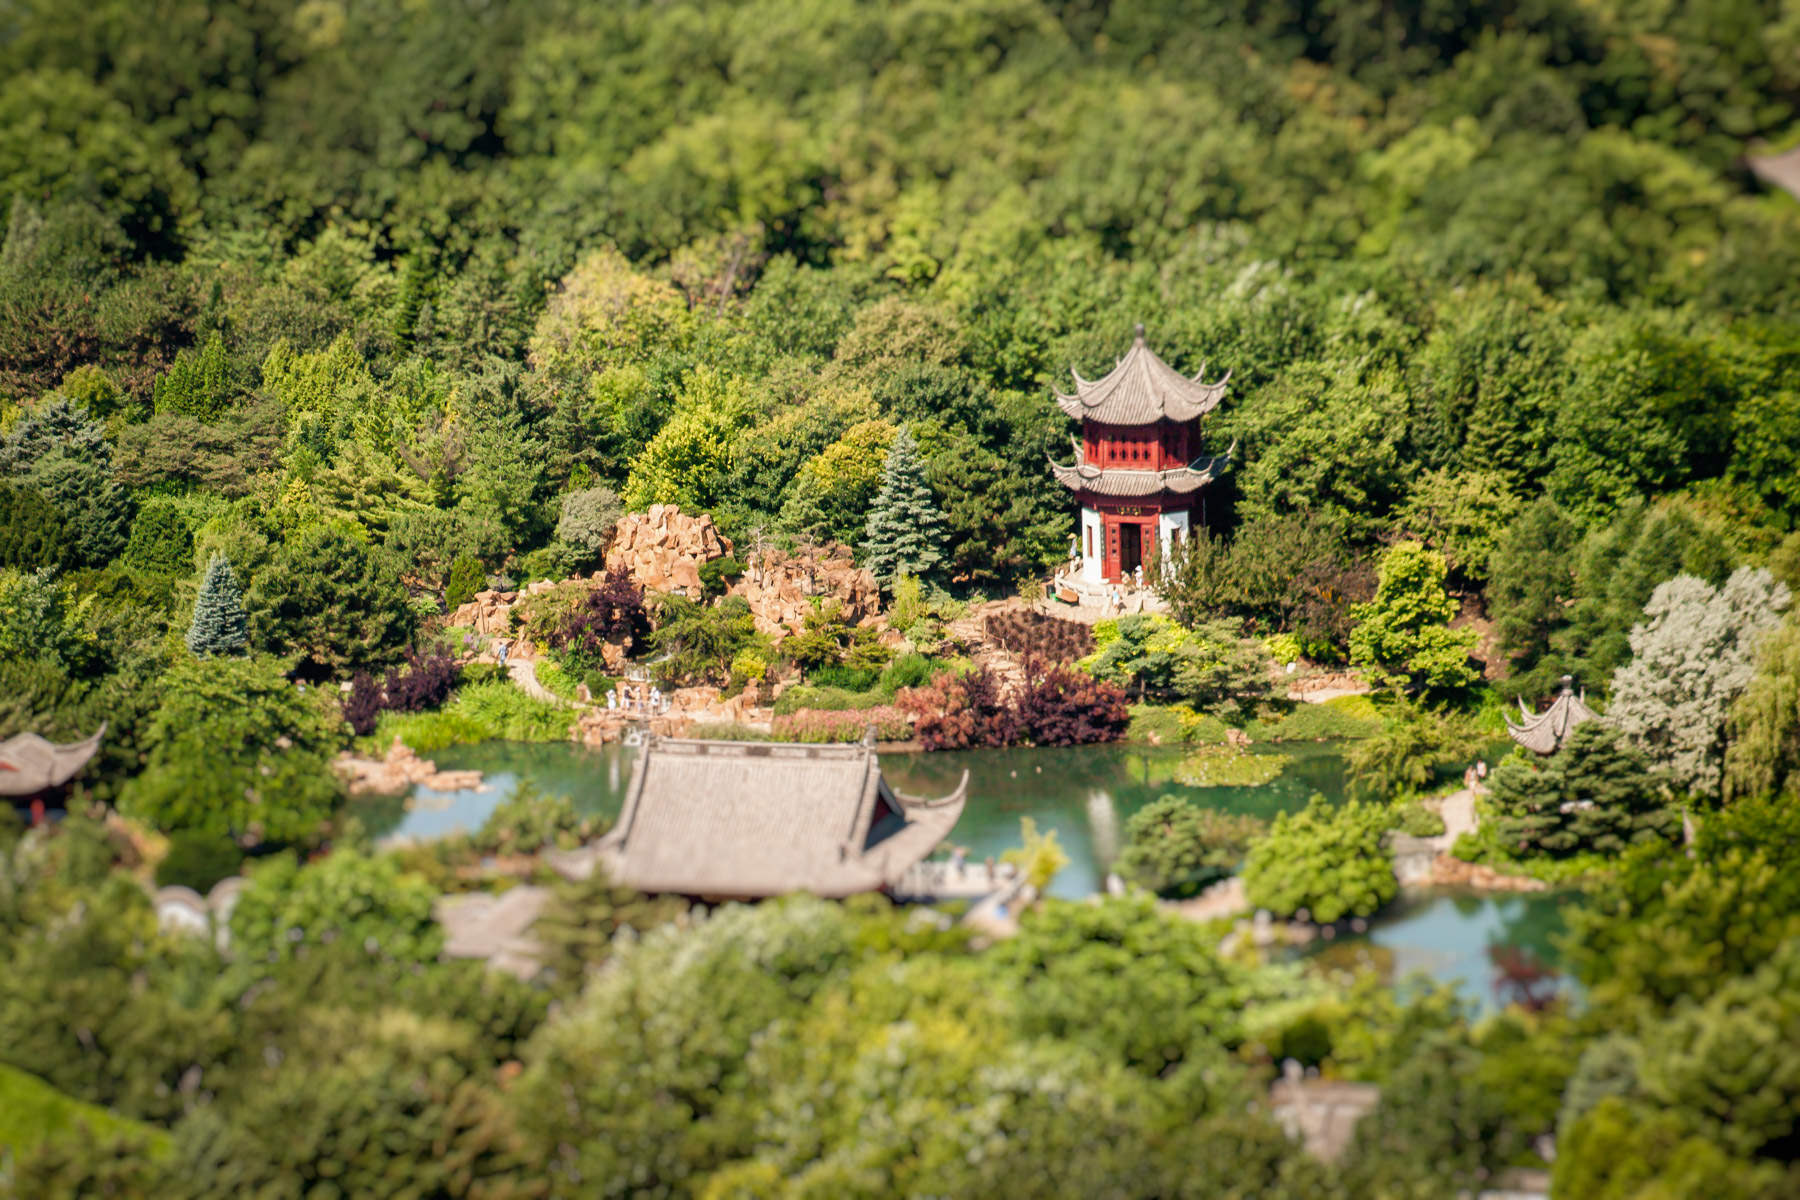 A pagoda nestled amongst the trees at the Chinese Garden in the Jardin botanique de Montréal.